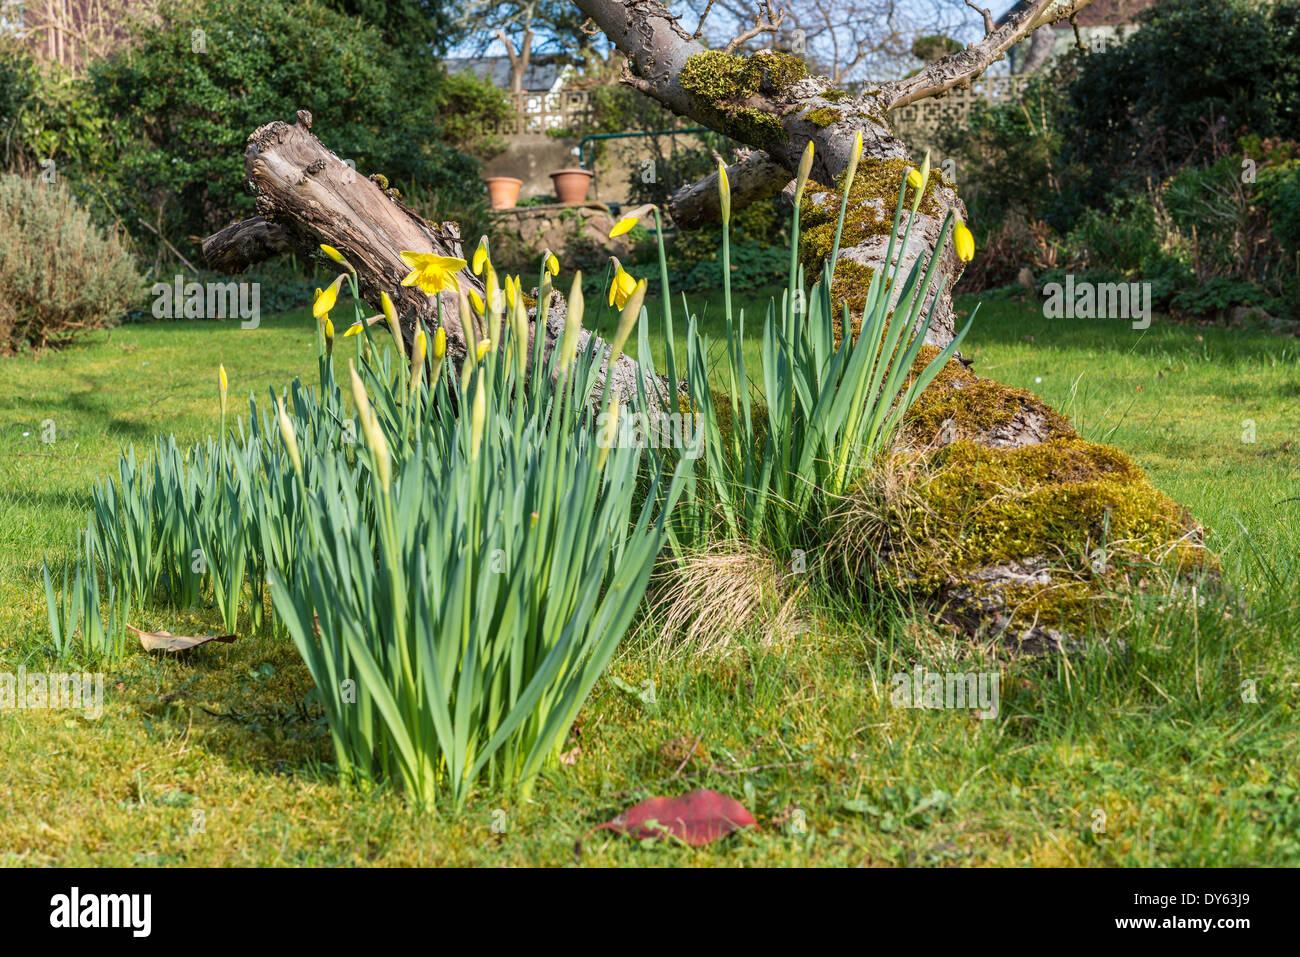 Daffodils growing in garden under old apple tree in spring. Fifth of sequence of 10 (ten) images photographed over five weeks. - Stock Image